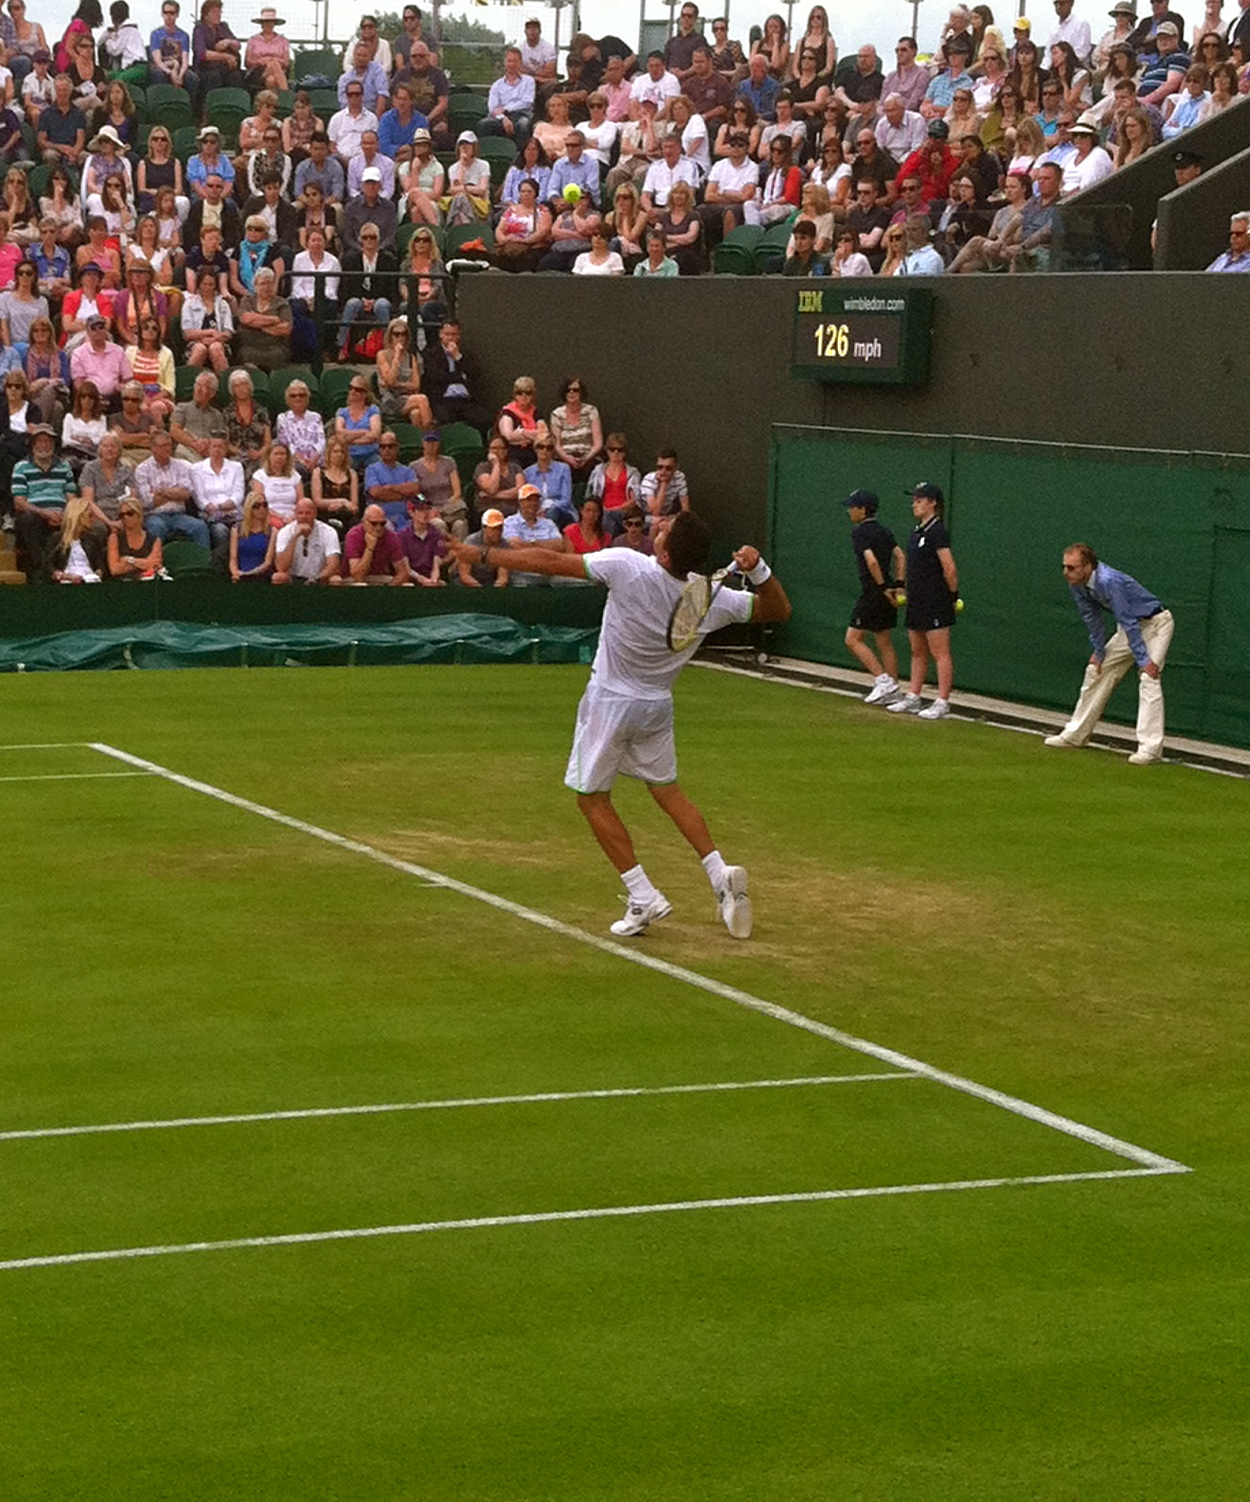 Wimbledon Tennis--Completely worth the lack of sleep and hours standing in the